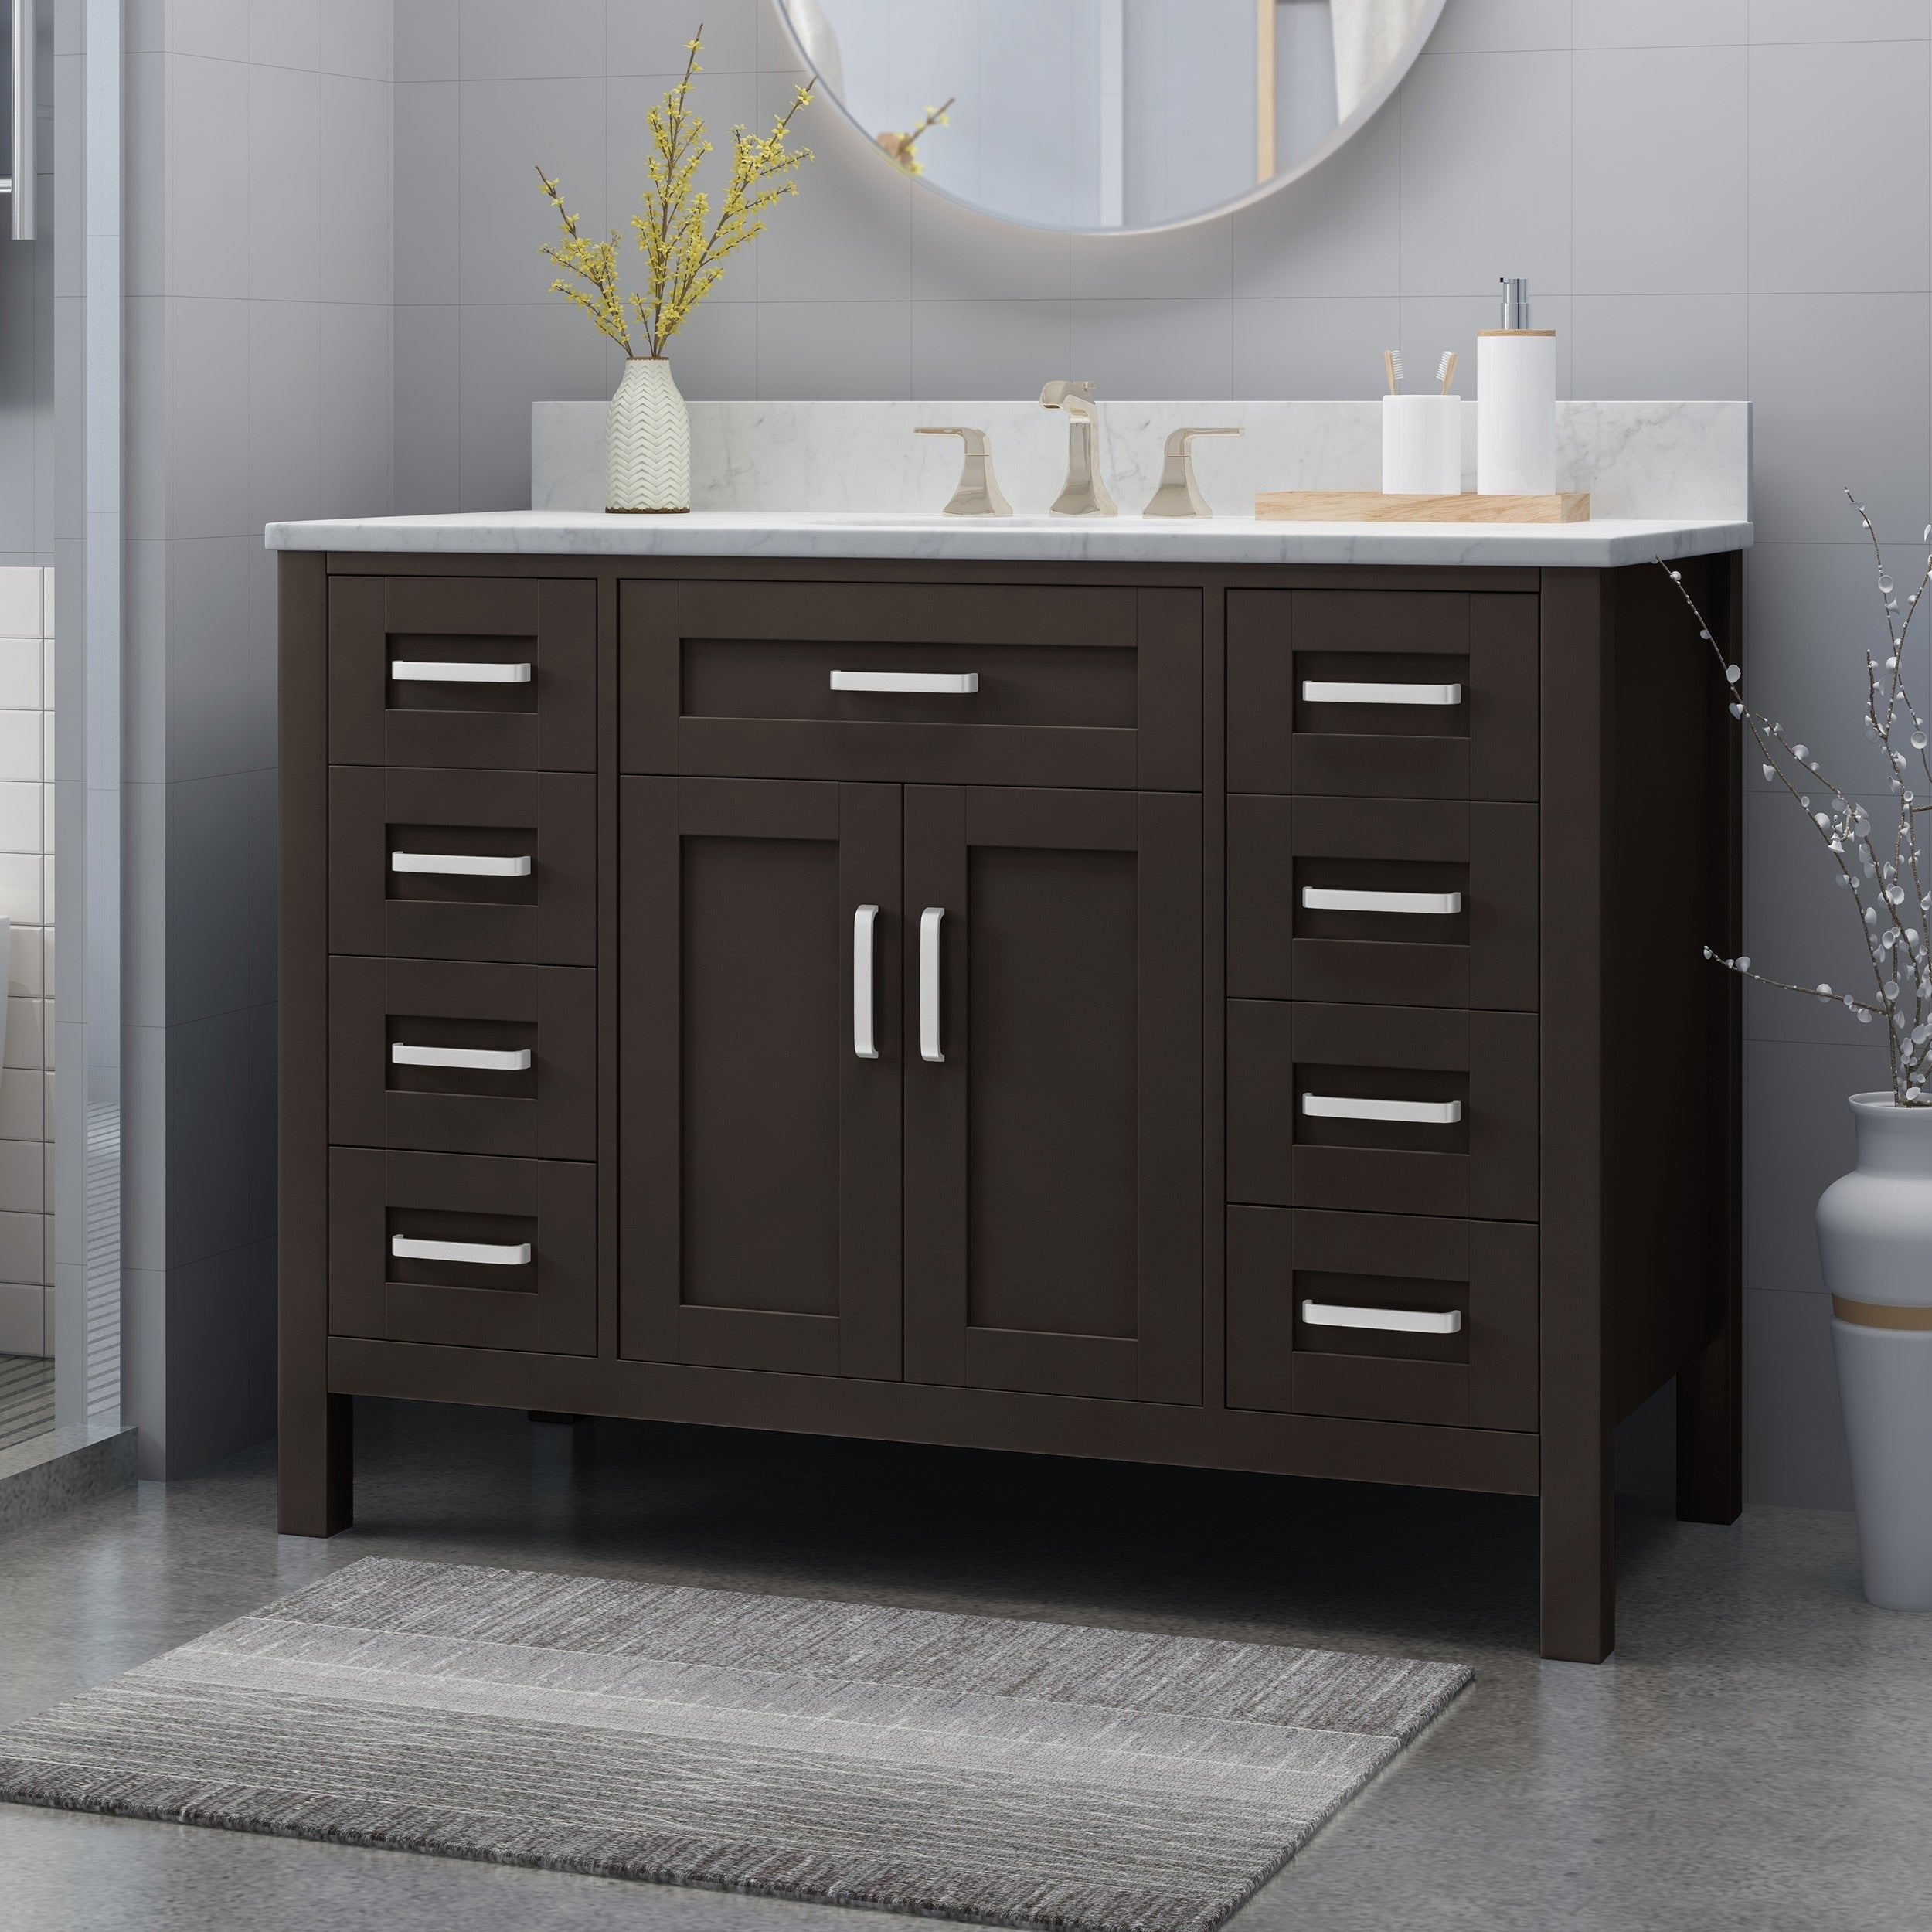 Shop For Greeley Contemporary 48 Wood Single Sink Bathroom Vanity With Carrera Marble Top By Christopher Knight Home Get Free Delivery On Everything At Overstock Your Online Furniture Outlet Store Get 5 In Rewards With Club O 25716175